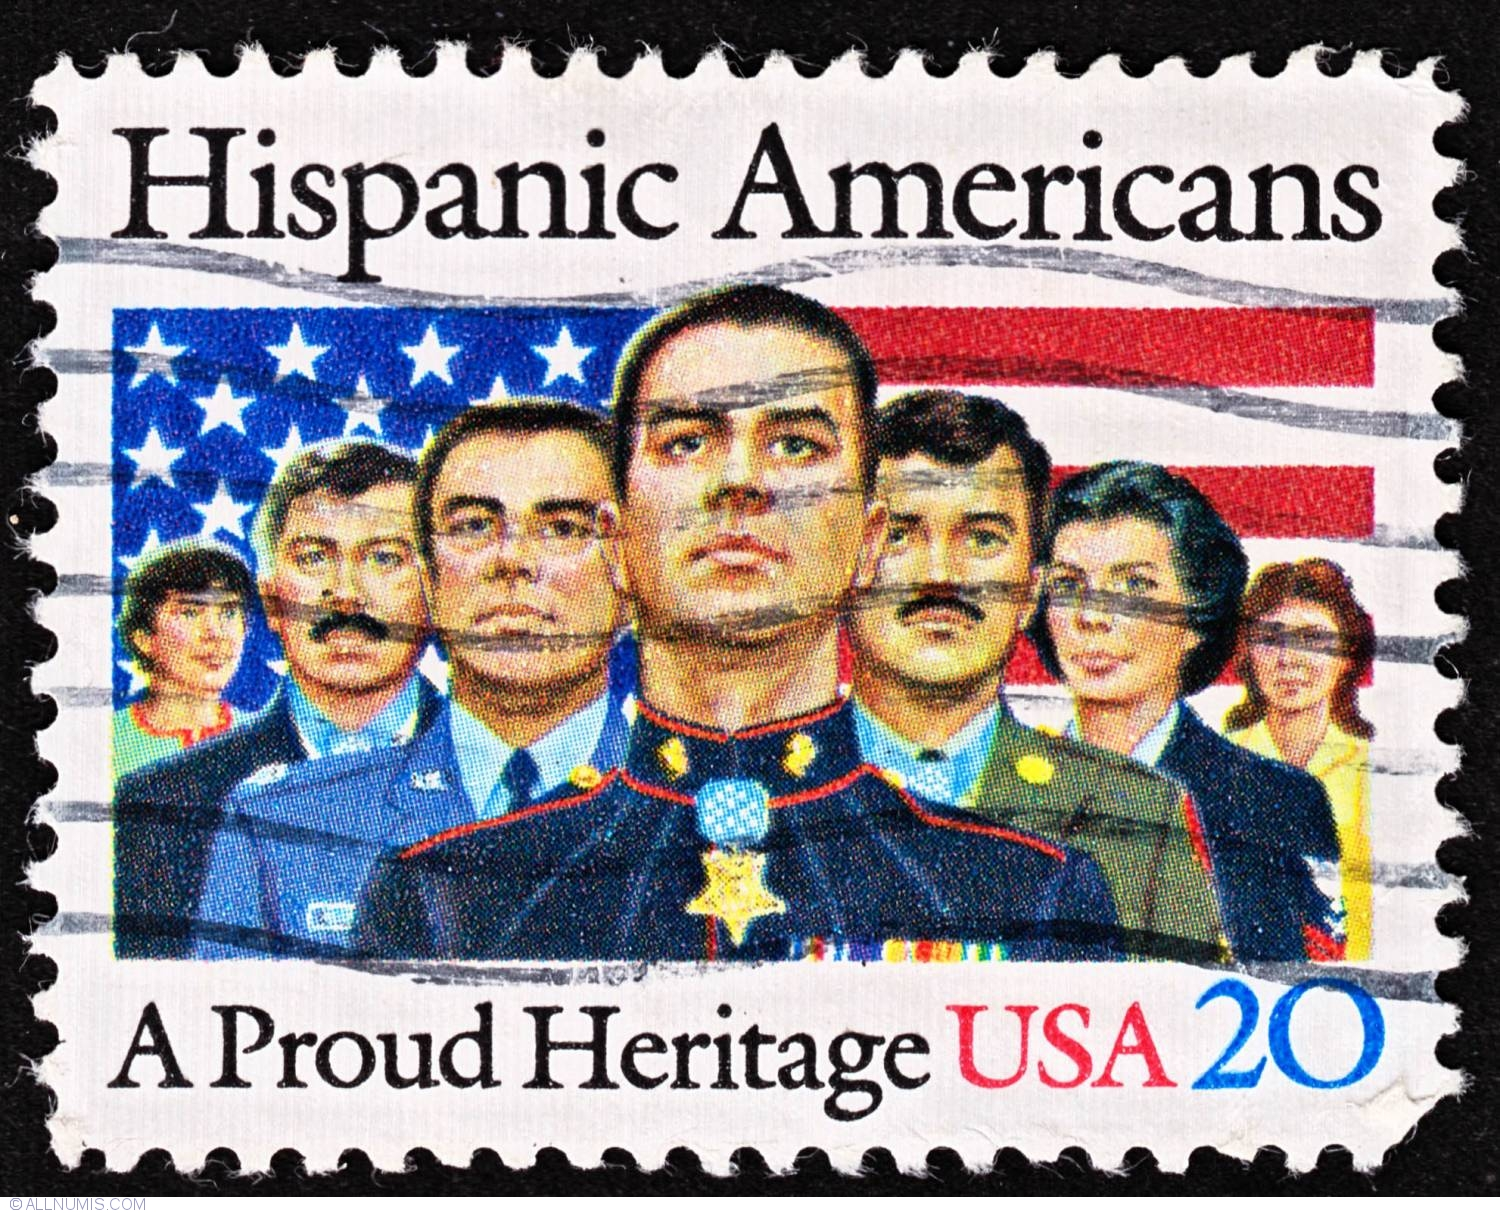 hispanic americans in the united states Hispanic americans in the united states navy former chief of naval operations (cno) and current chairman of the joint chiefs of staff admiral mike mullen.